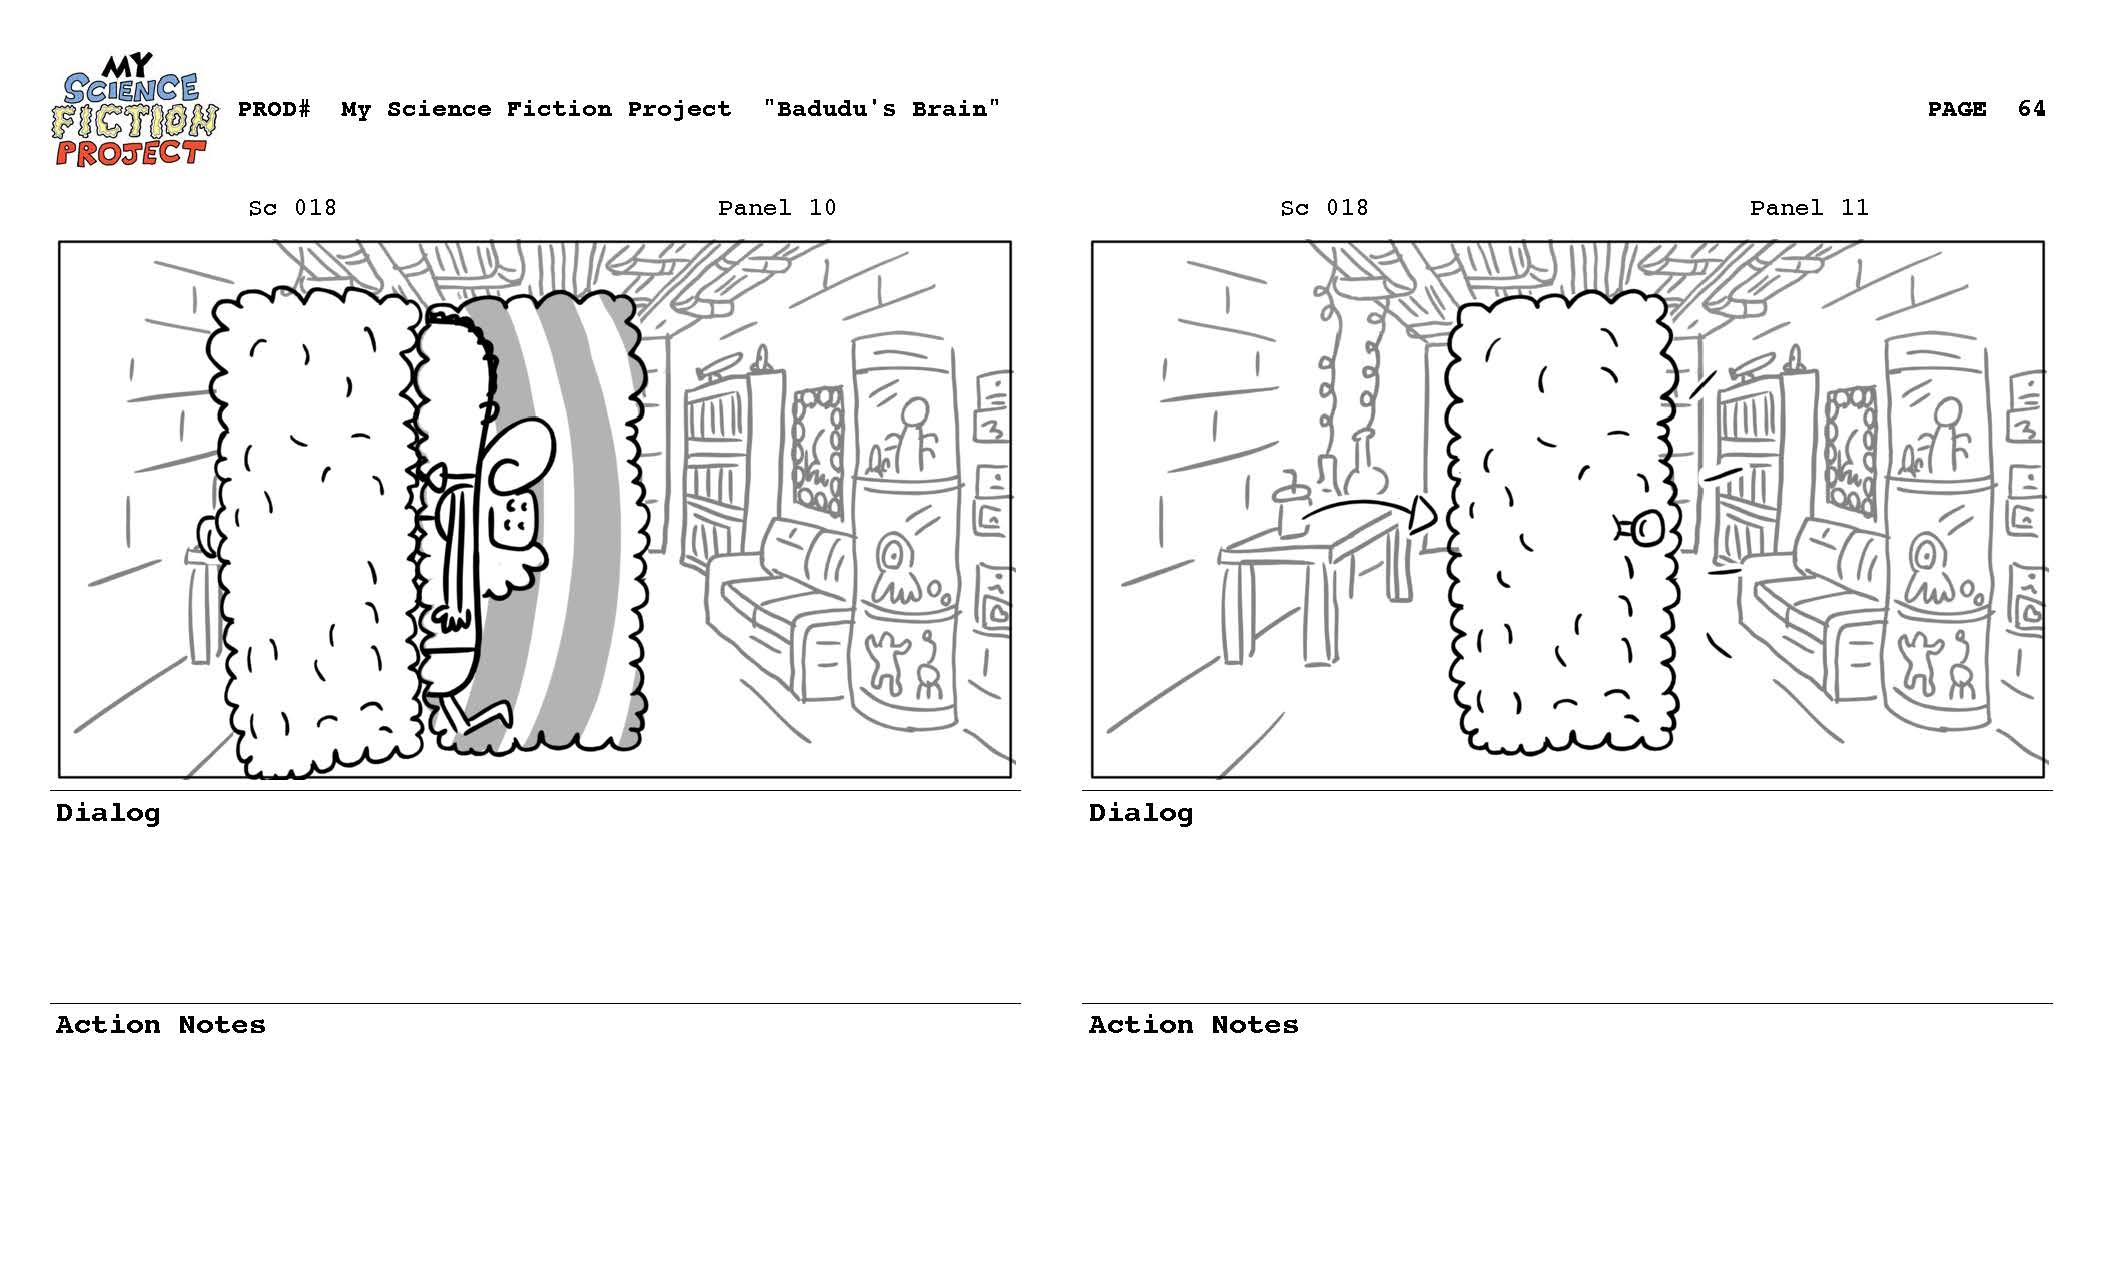 My_Science_Fiction_Project_SB_083112_reduced_Page_064.jpg